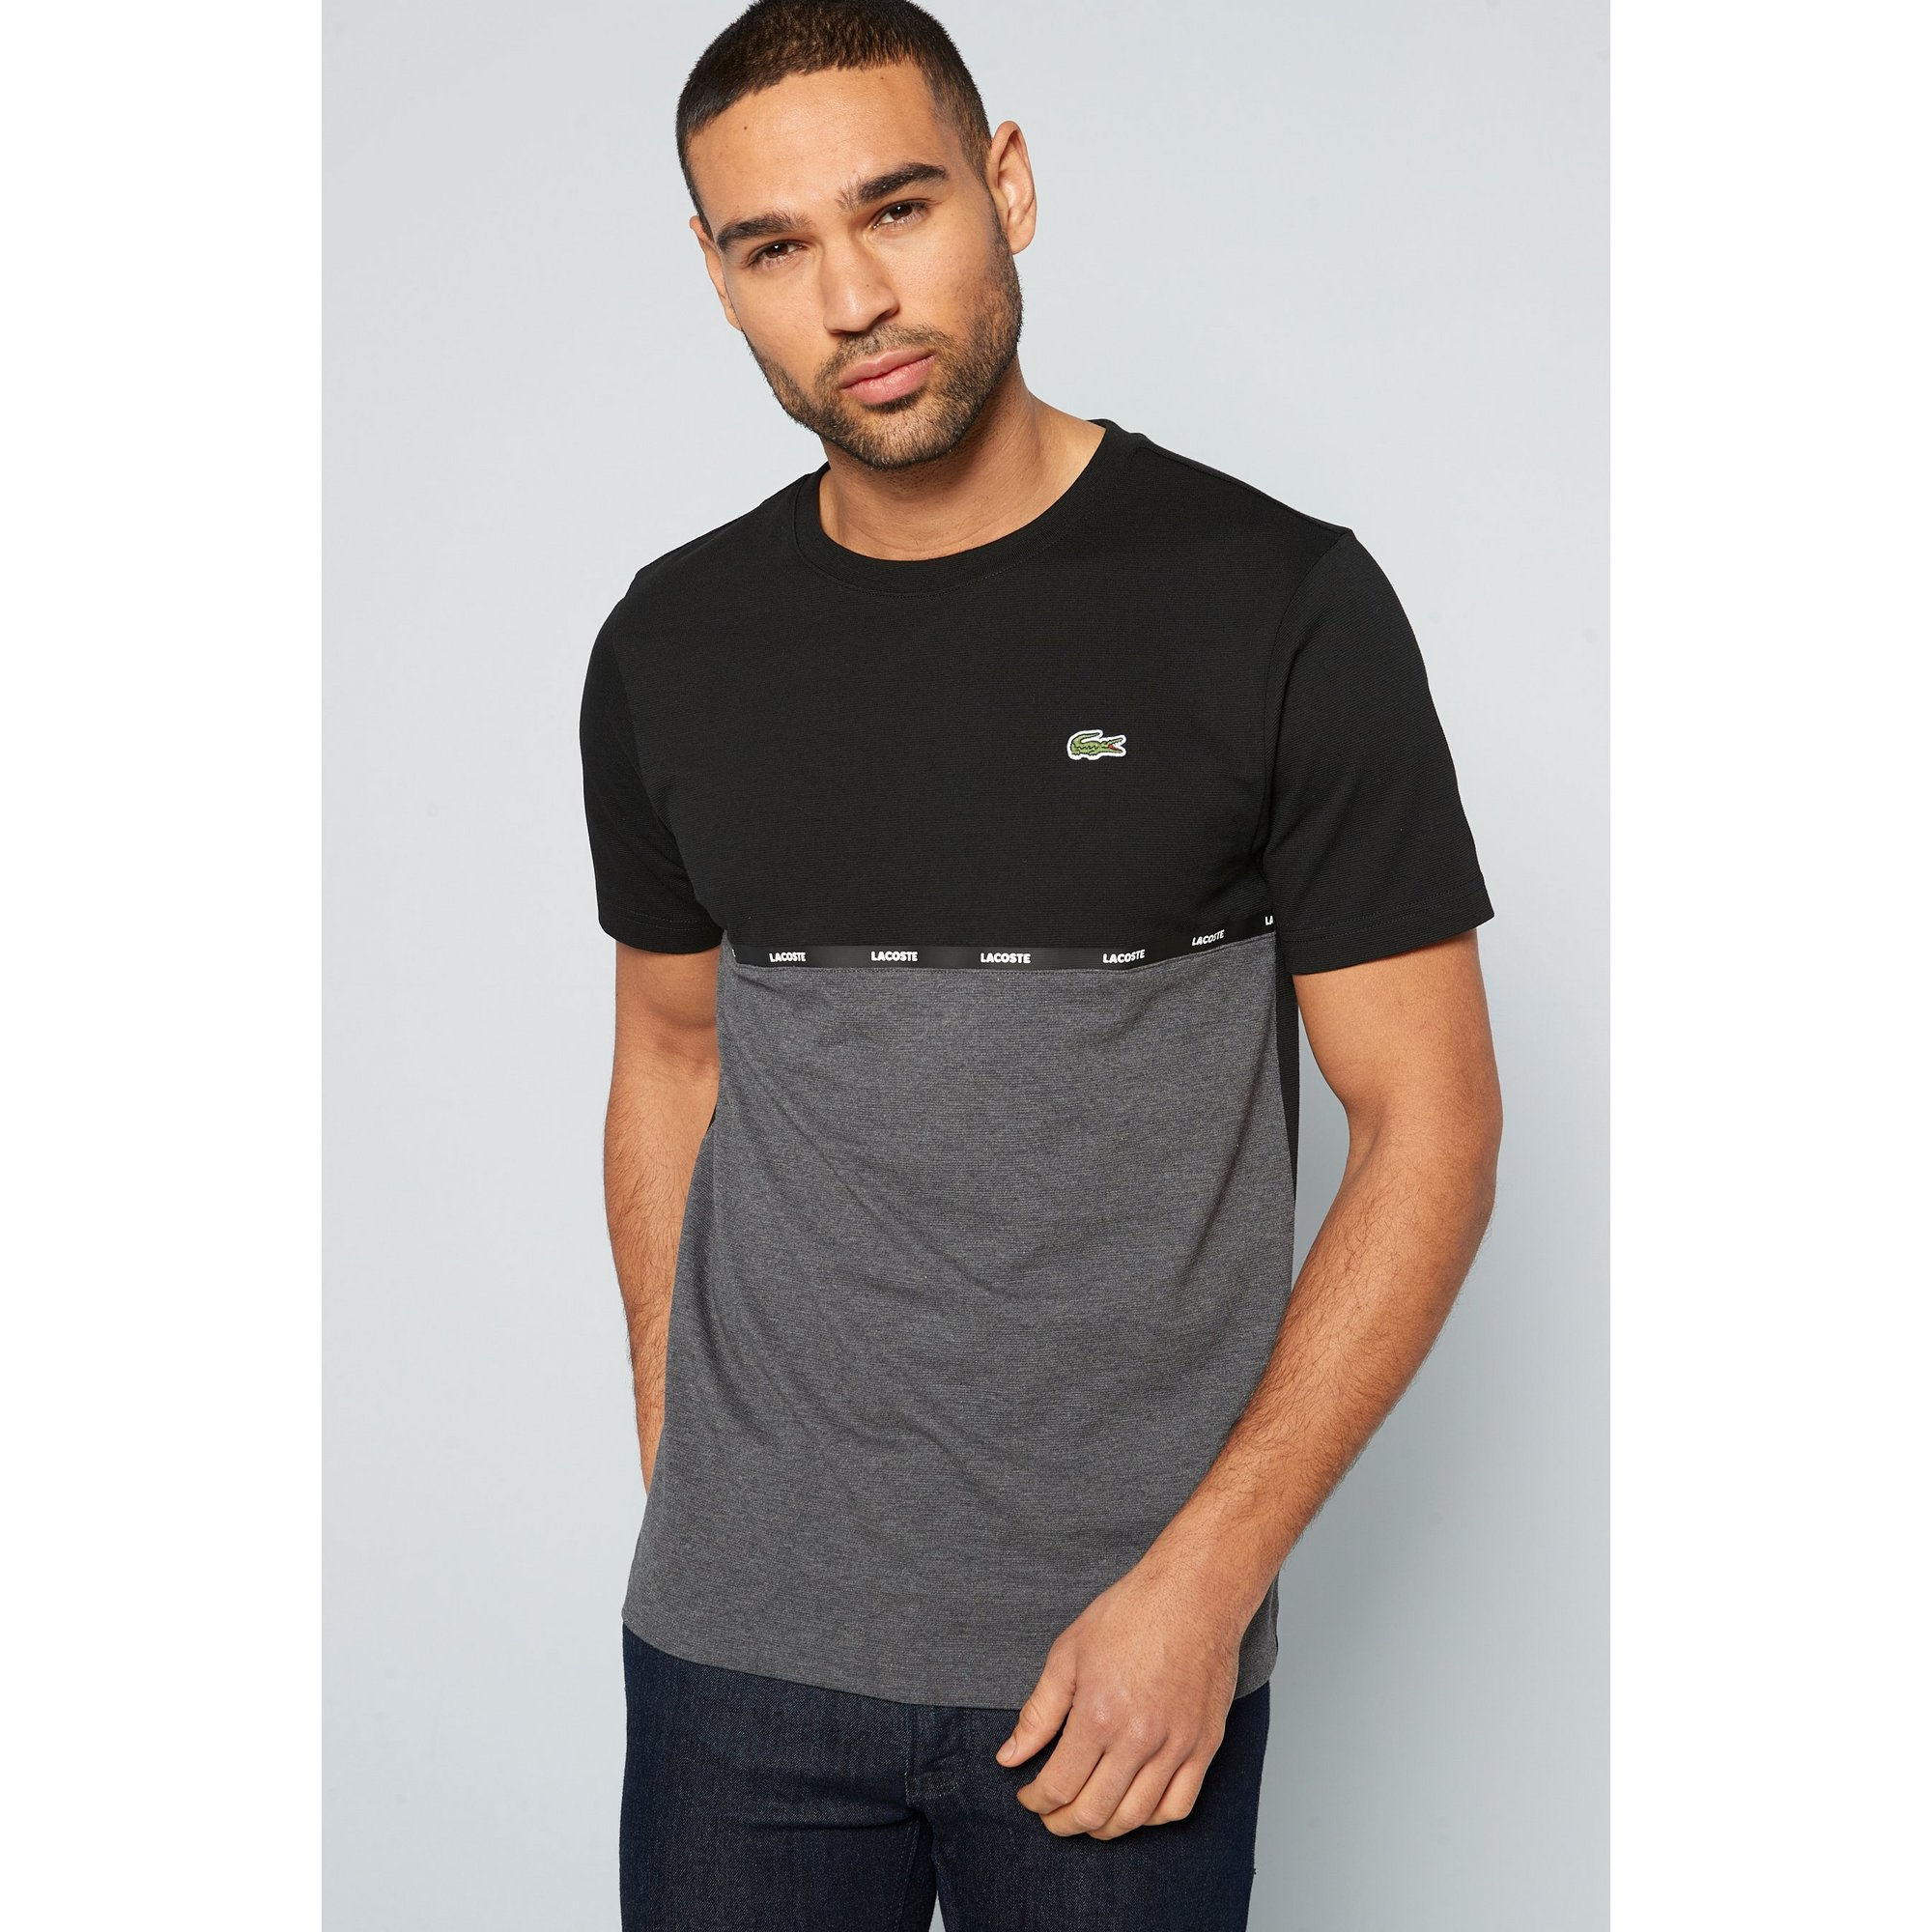 Image of Lacoste Black and Charcoal Crew Neck T-Shirt